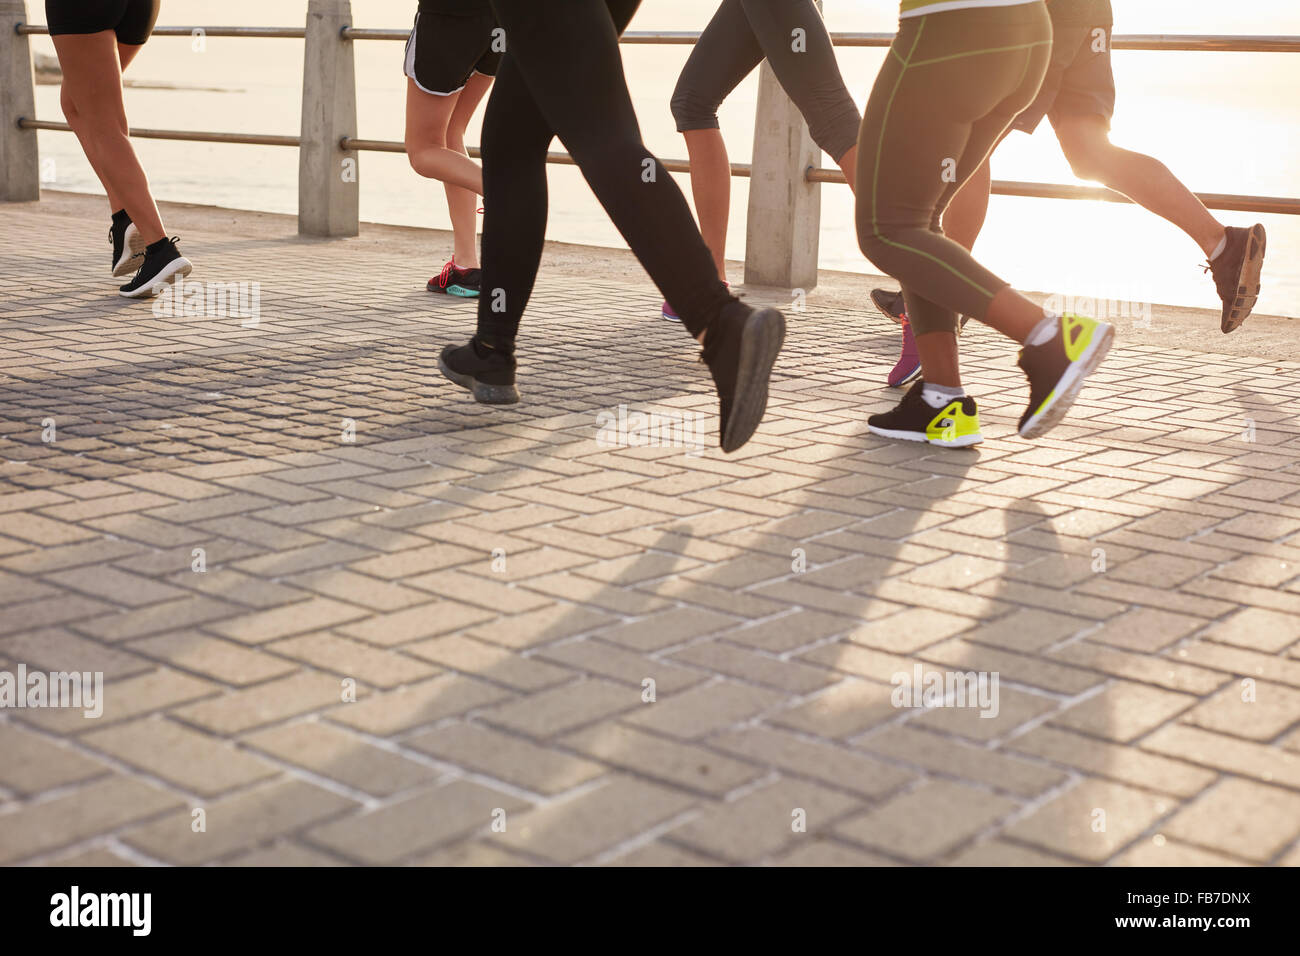 Legs of runners training together on seaside promenade. People running on the street by the sea. - Stock Image